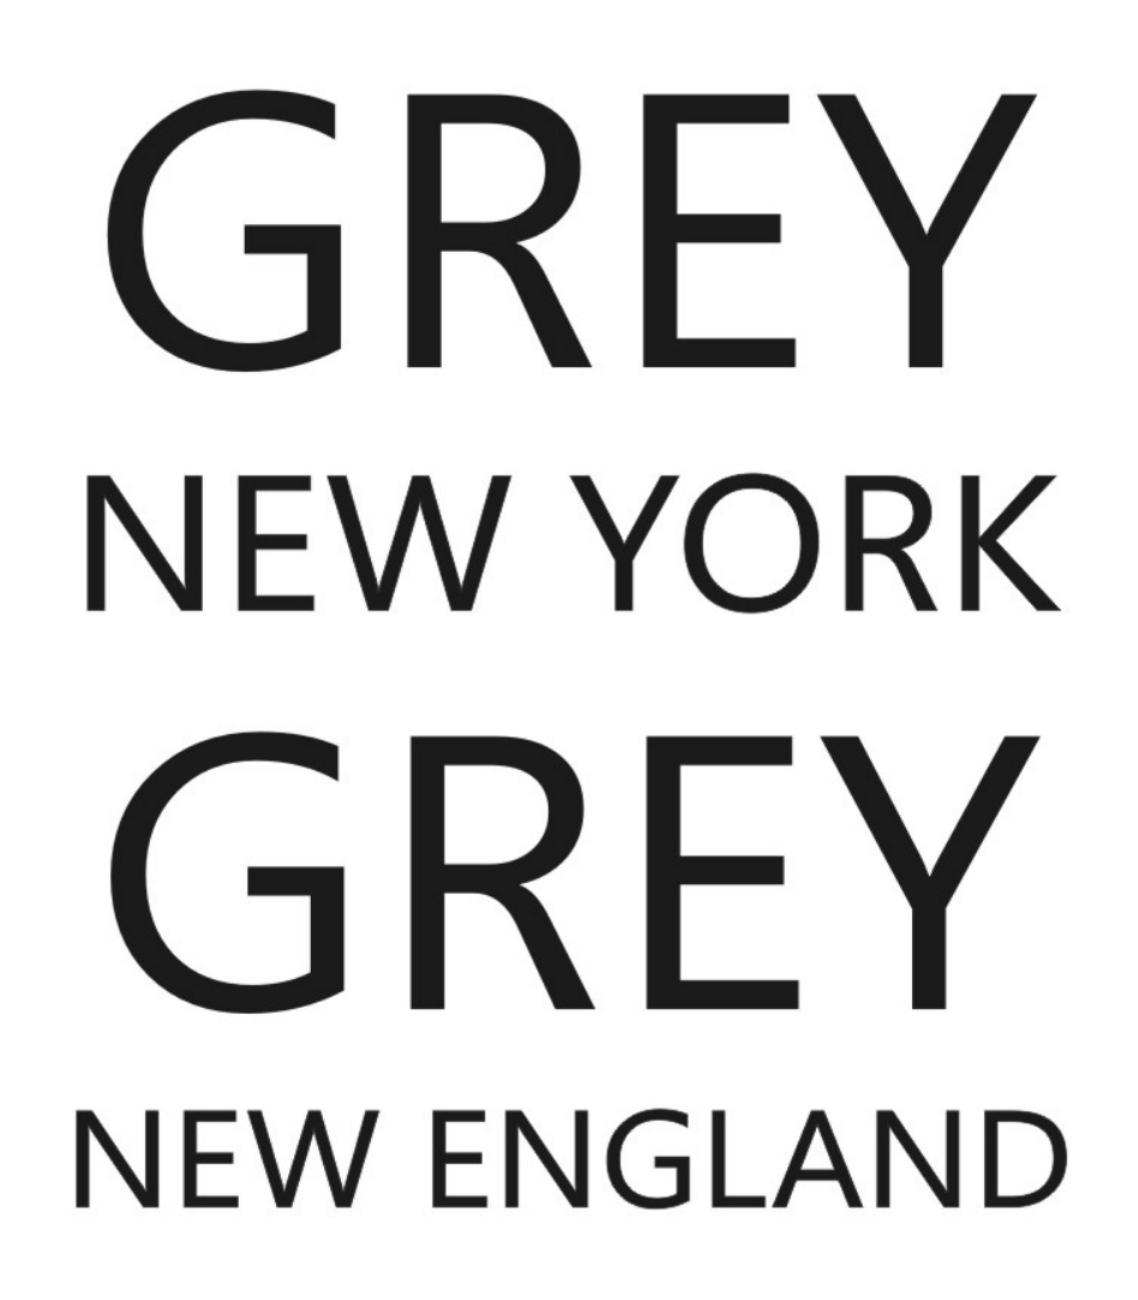 Grey New York Grey New England